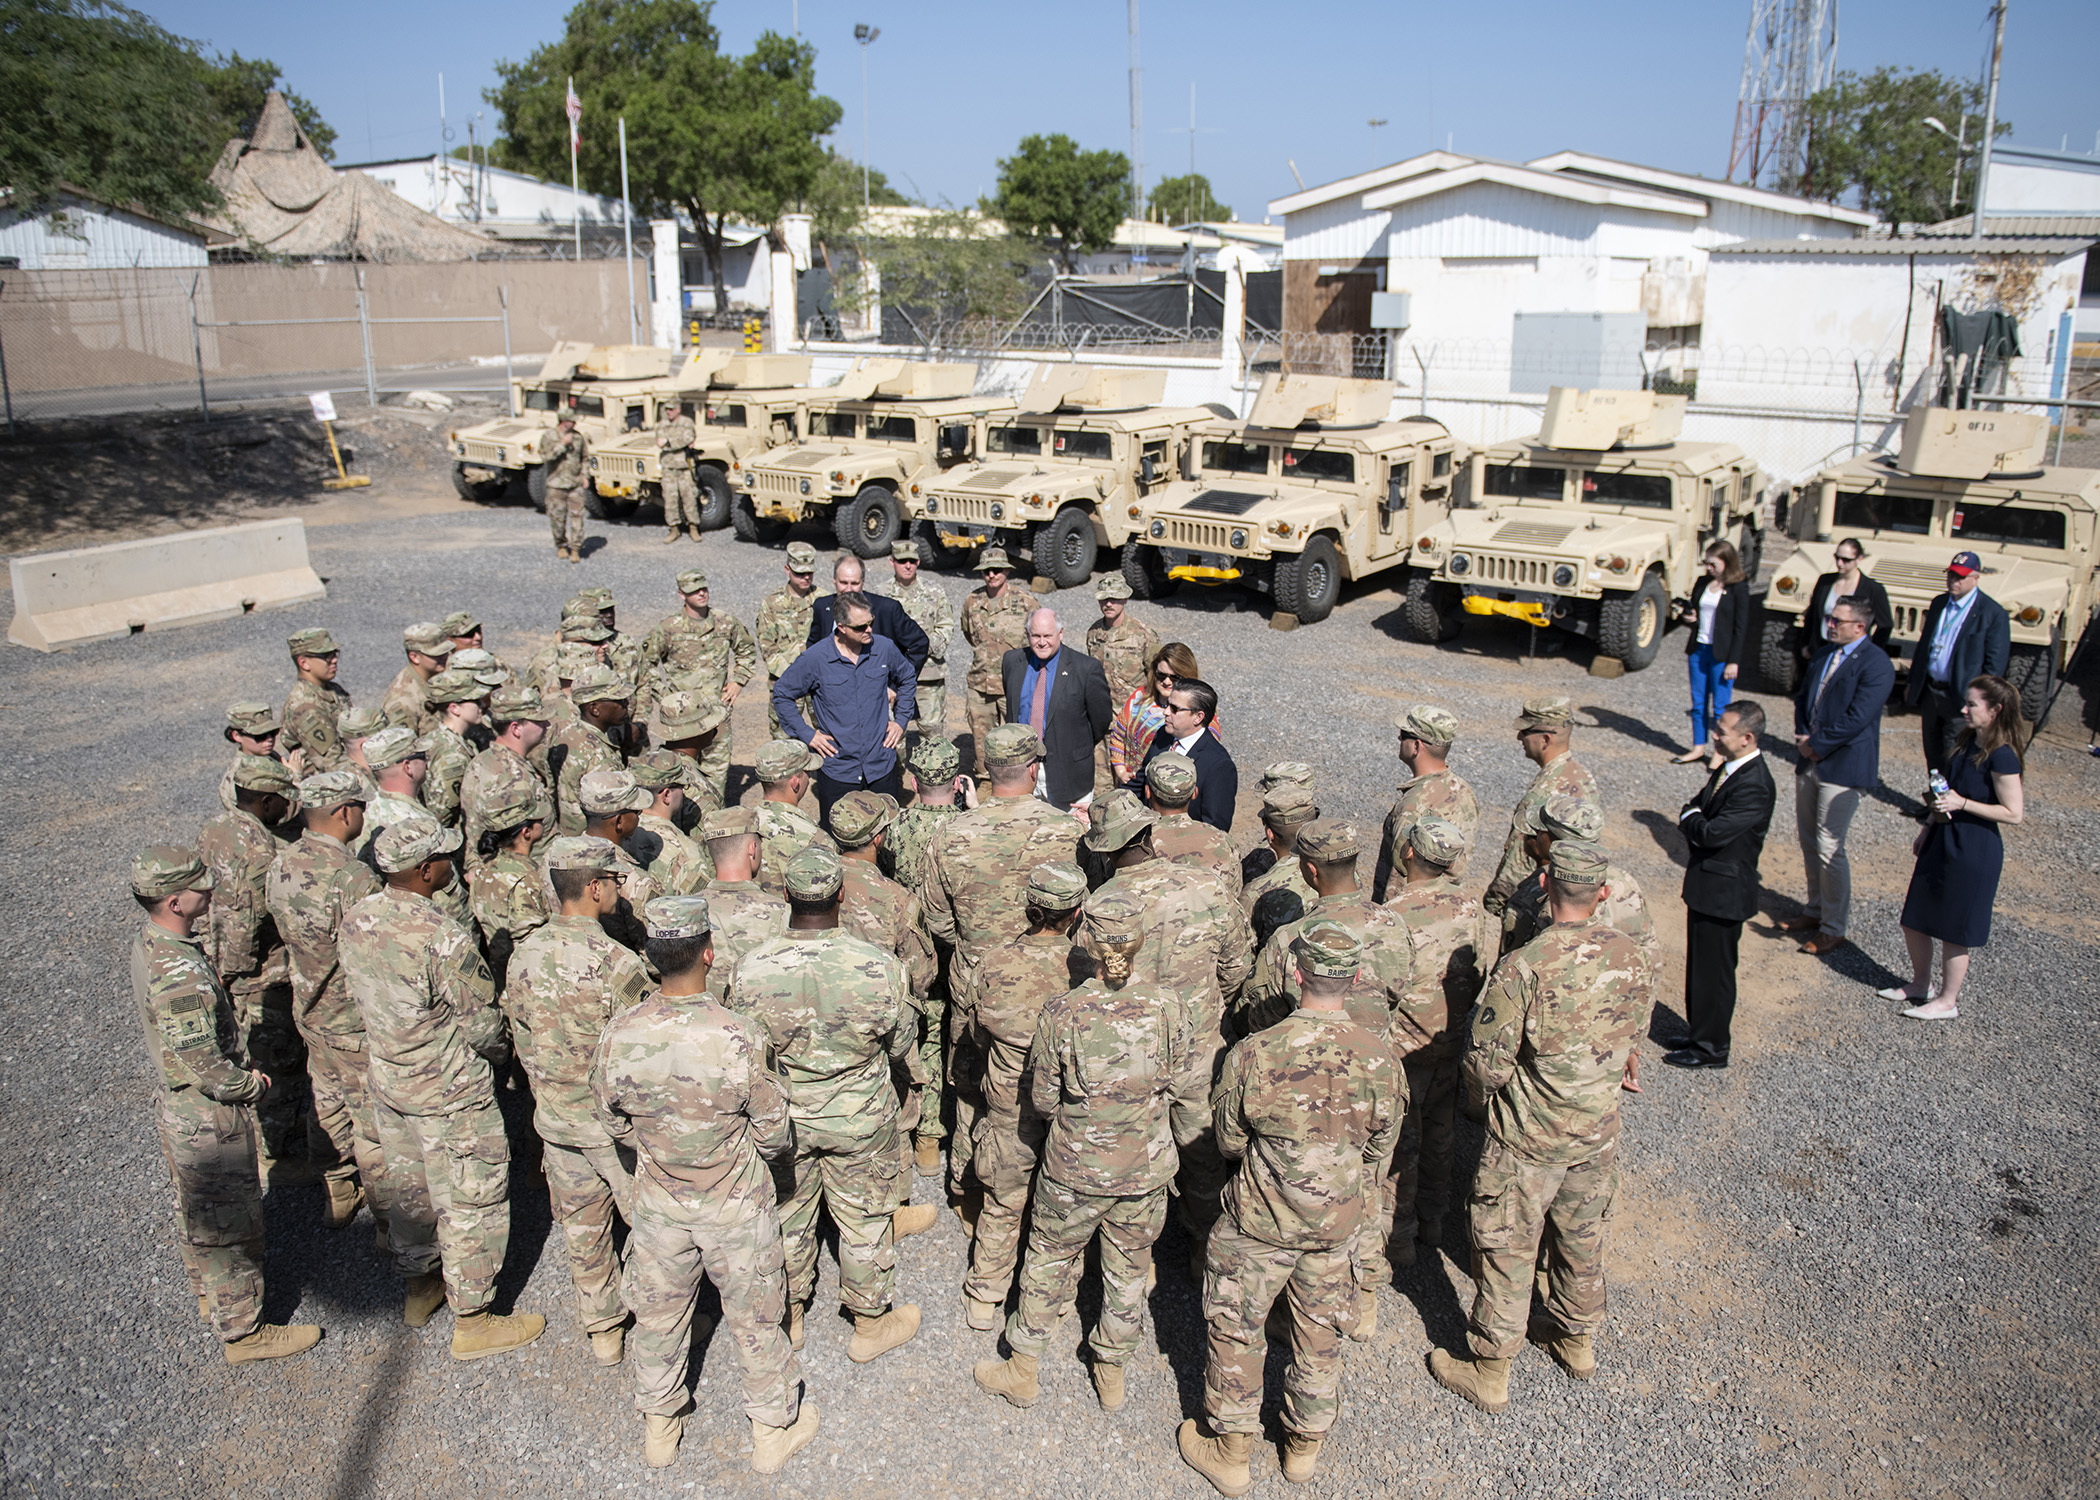 Congressional delegates meet with Task Force Alamo, Texas Army National Guard, Soldiers during a congressional delegation visit at Camp Lemonnier, Djibouti, Nov. 21, 2018. Congressional delegates traveled to Djibouti to visit U.S. forces and embassy officials, and meet with national defense leaders to understand the current posture of readiness and security. (U.S. Air Force photo by Tech. Sgt. Shawn Nickel)